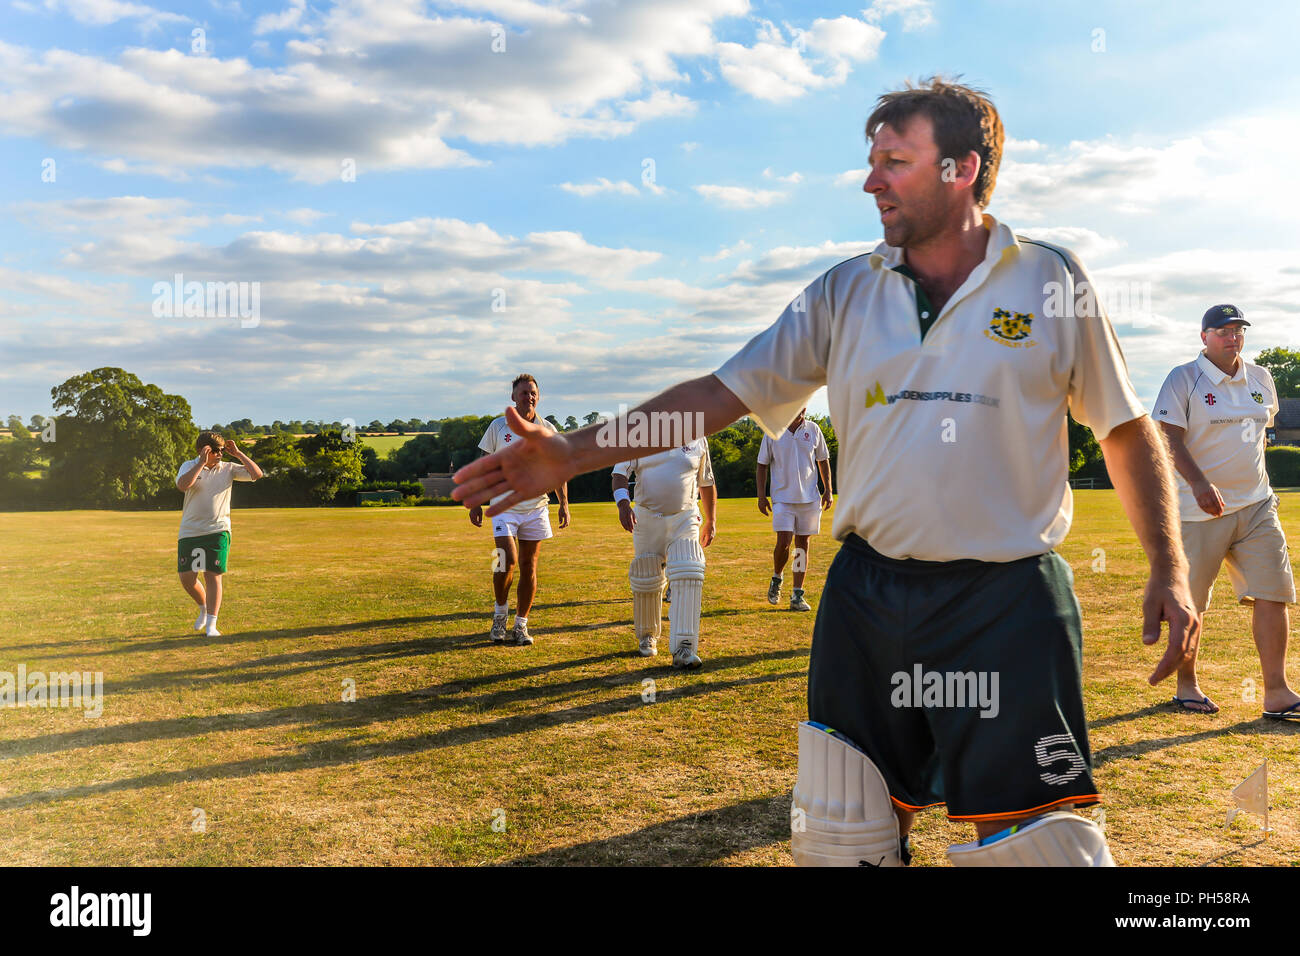 Blaksley - UK - 08/05/18 - Summer cricket in Northamptonshire - Blaksley - UK Stock Photo